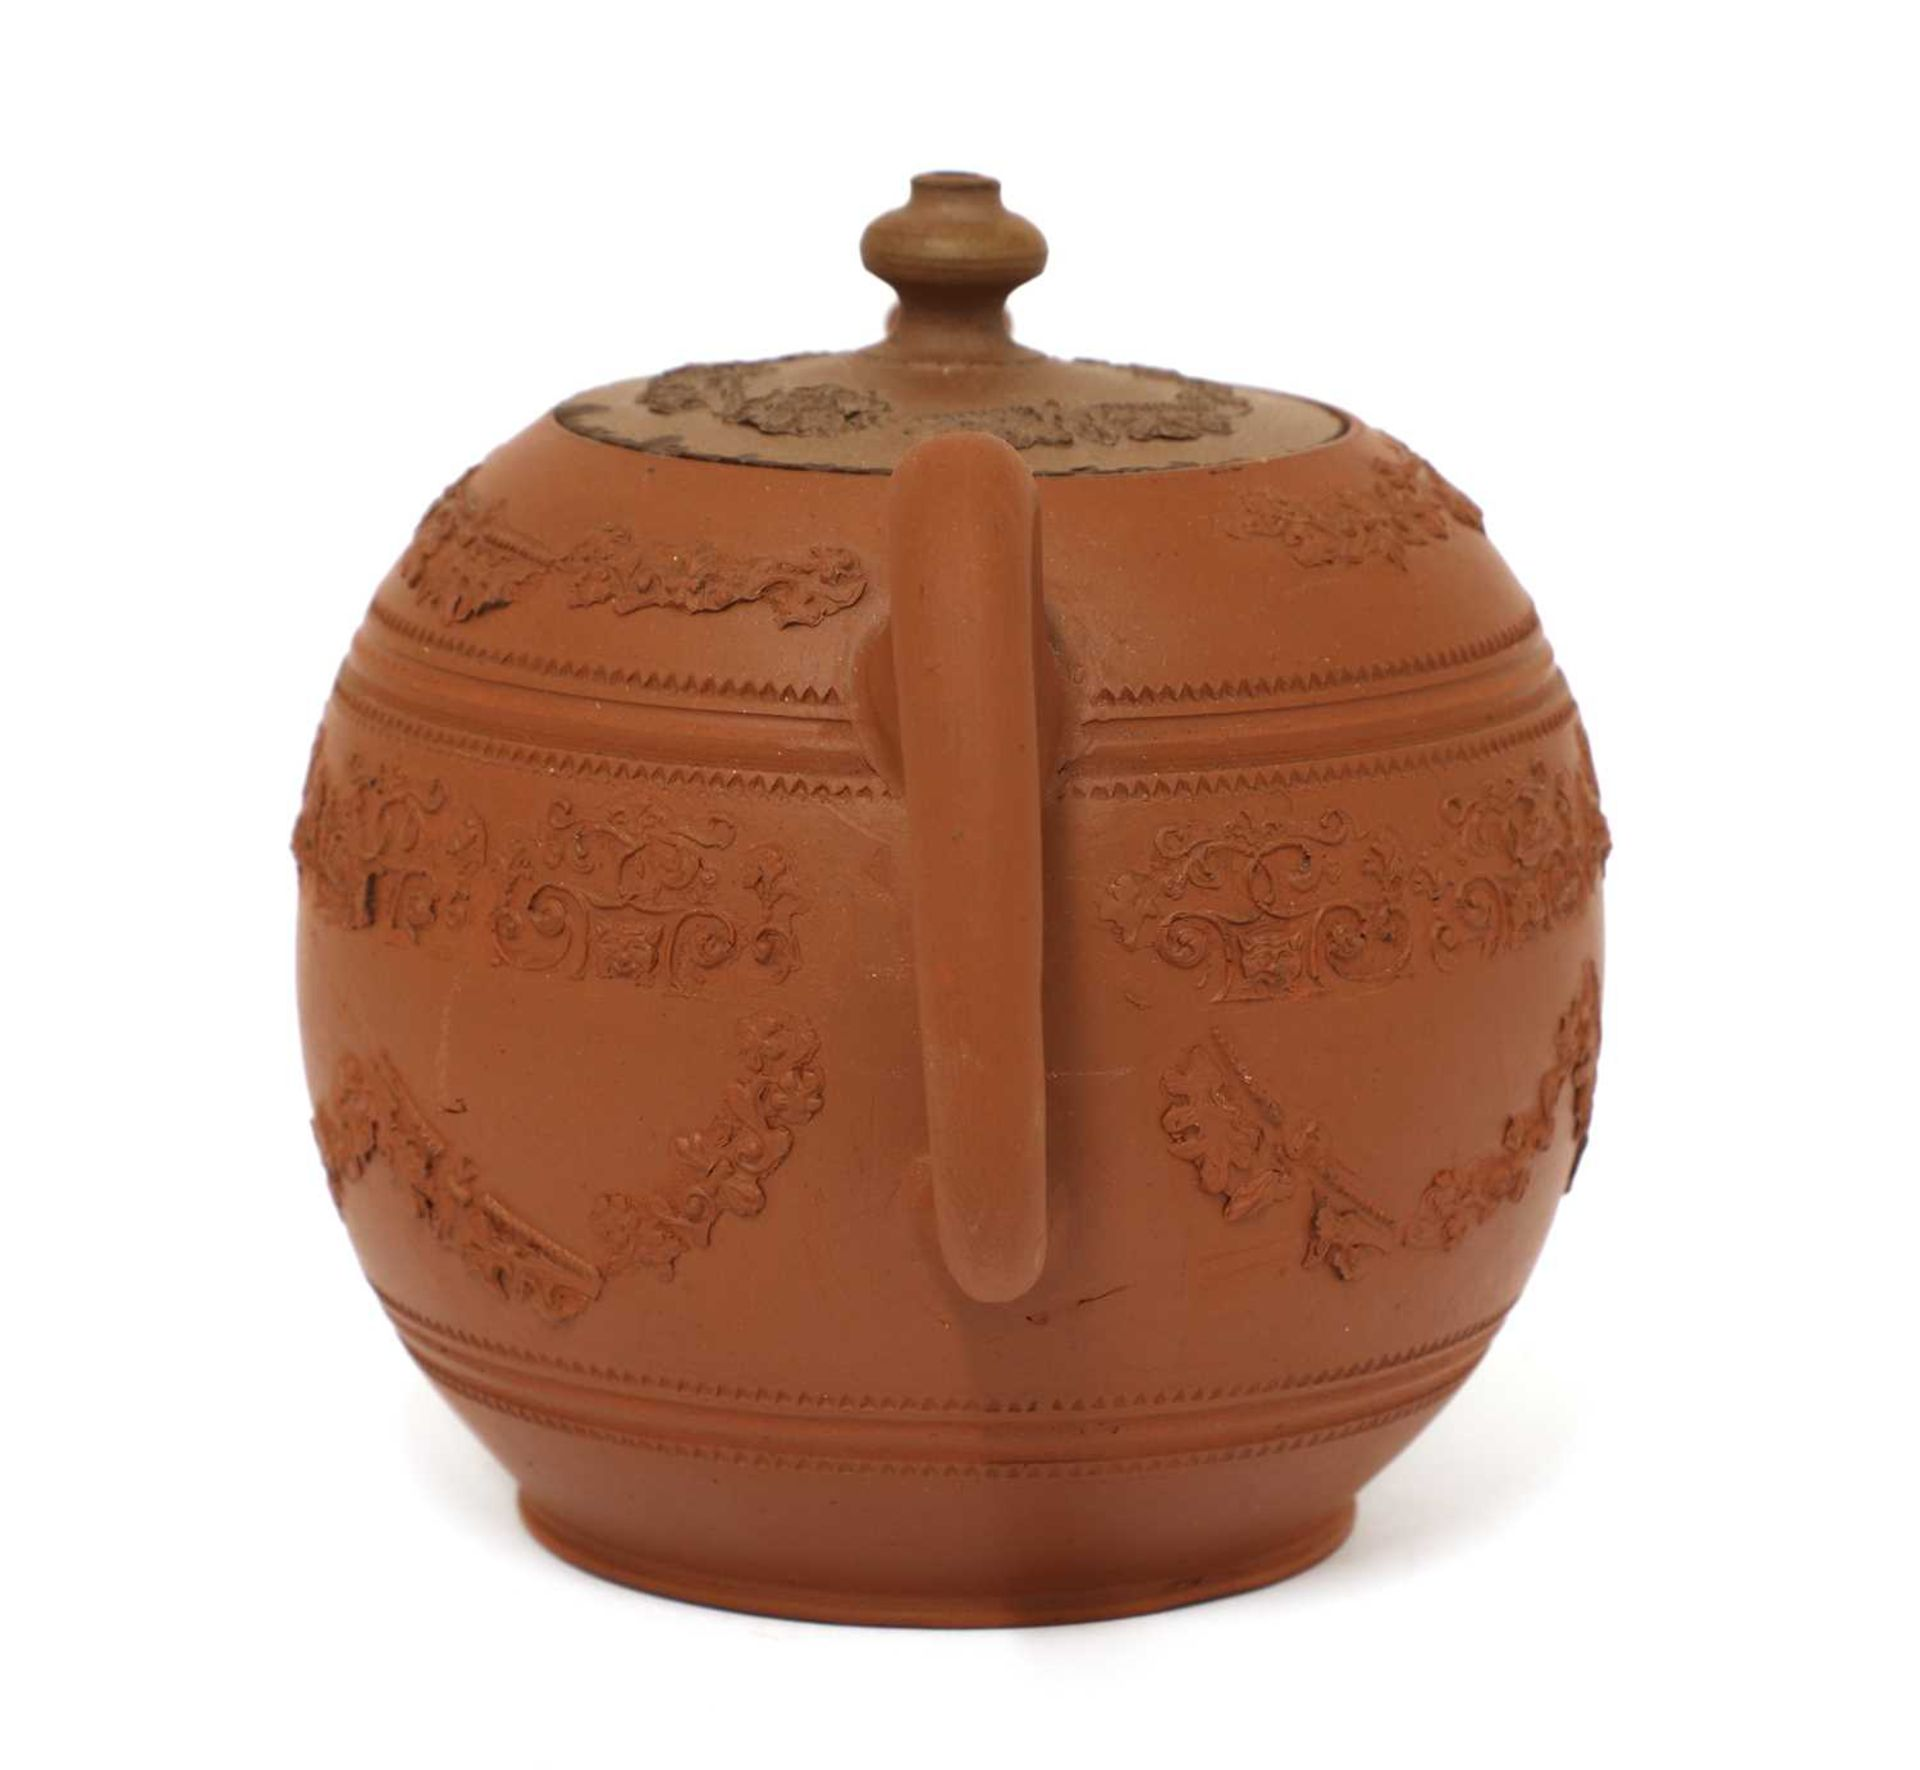 A Staffordshire redware globular teapot and cover, - Image 2 of 4